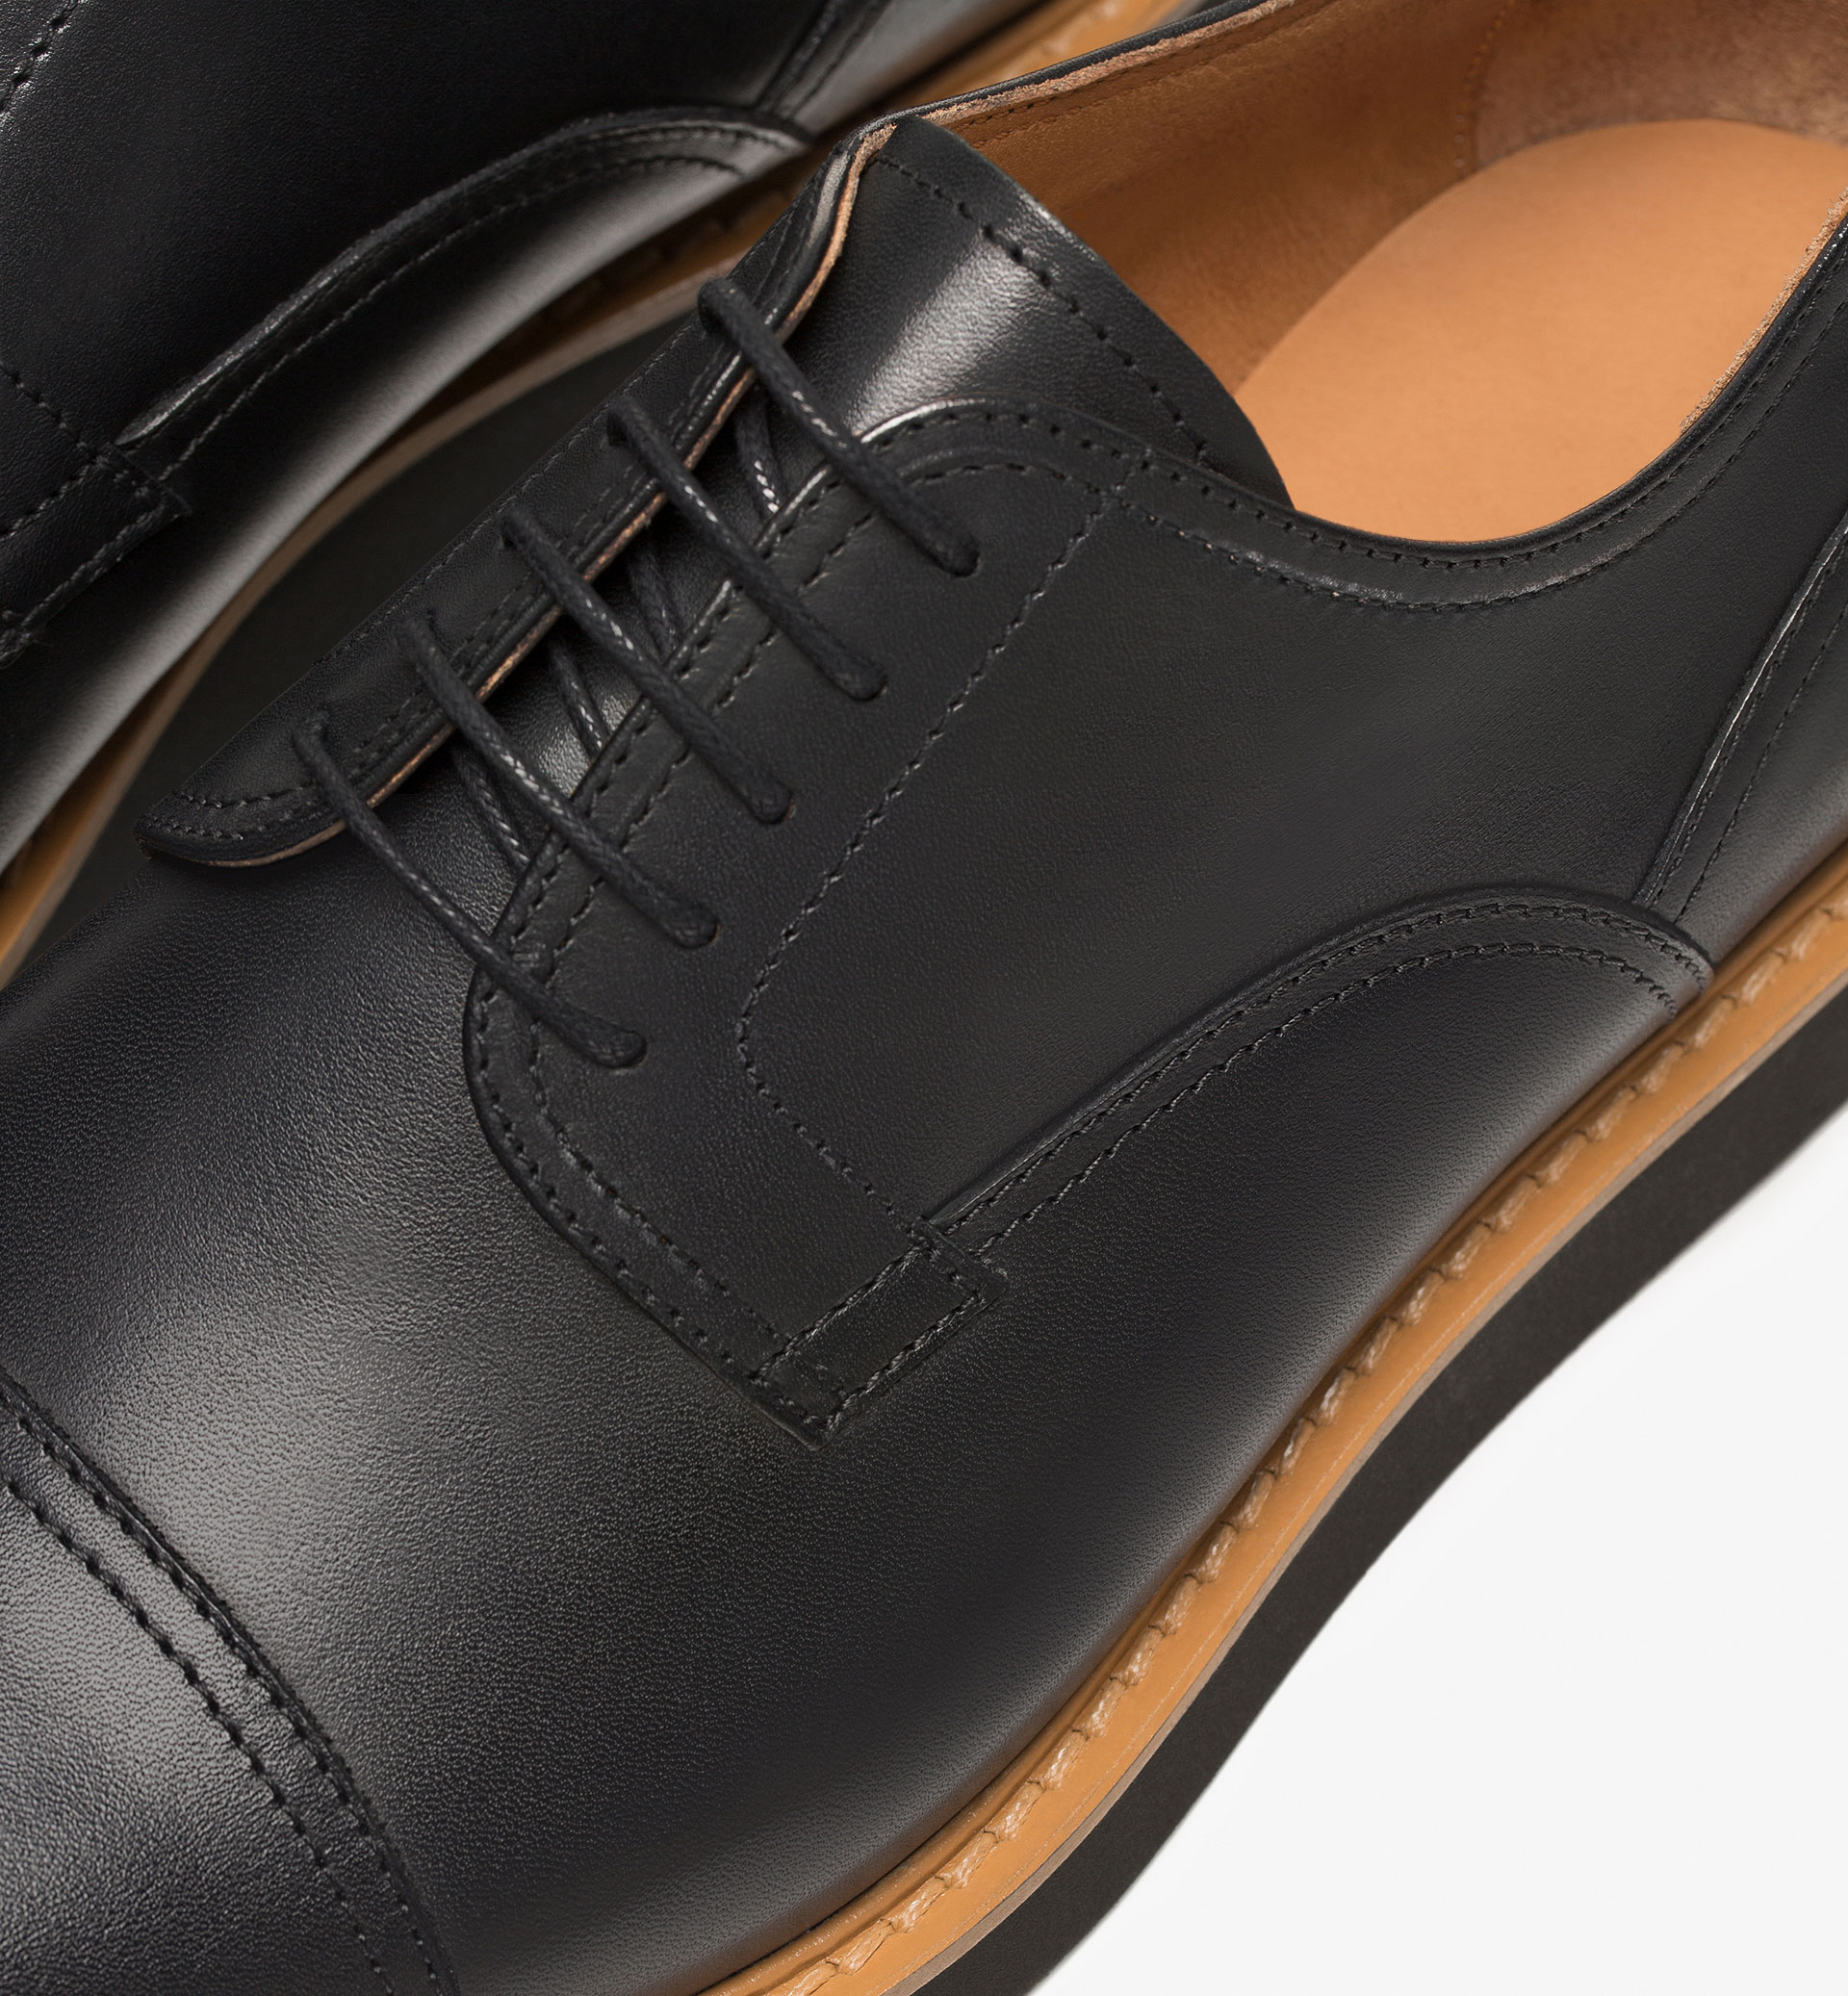 LEATHER BLUCHER SHOES